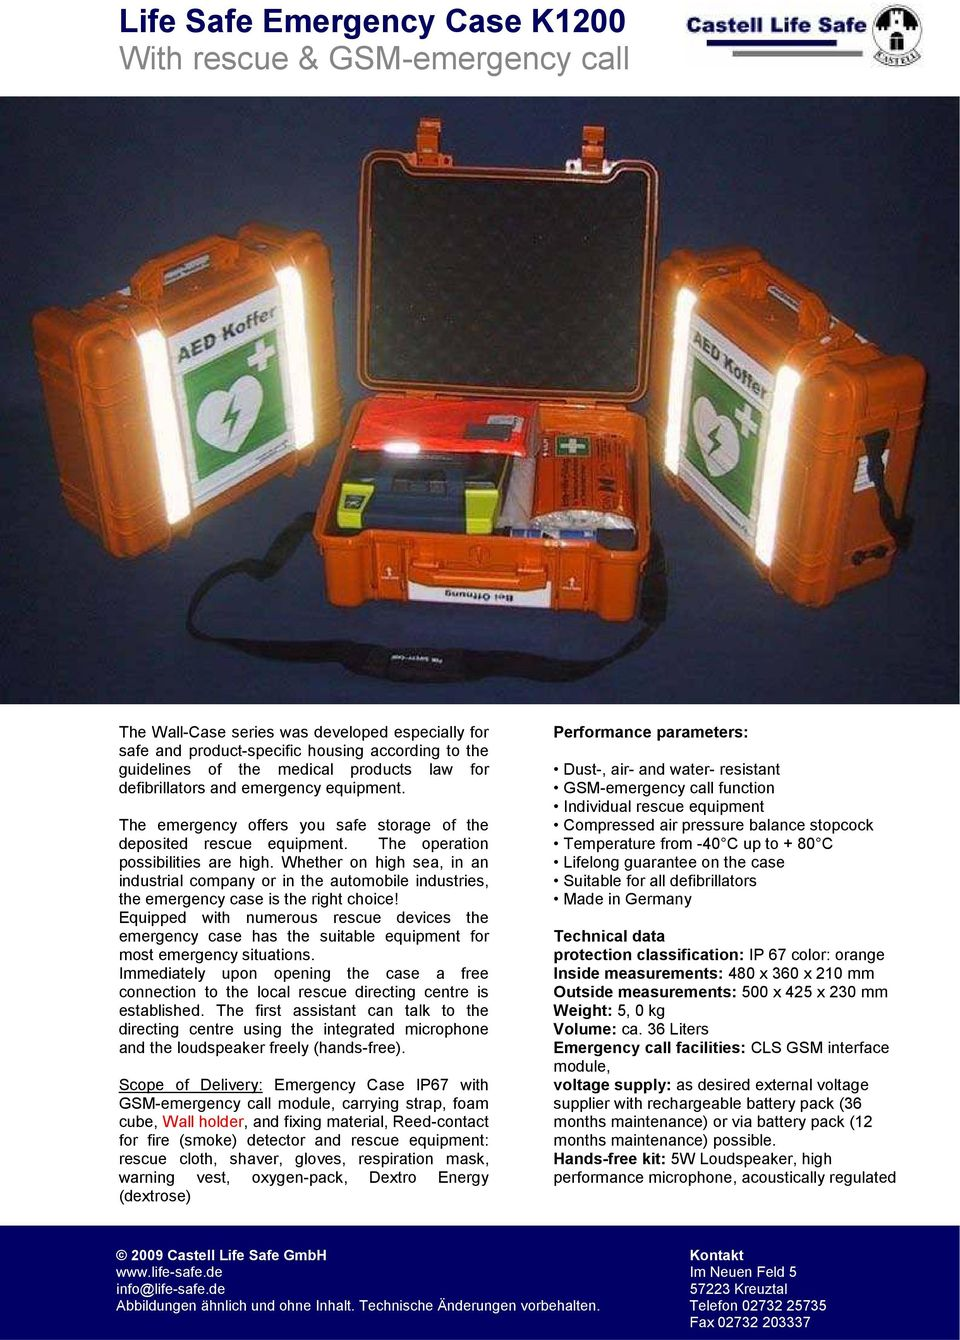 Whether on high sea, in an industrial company or in the automobile industries, the emergency case is the right choice!